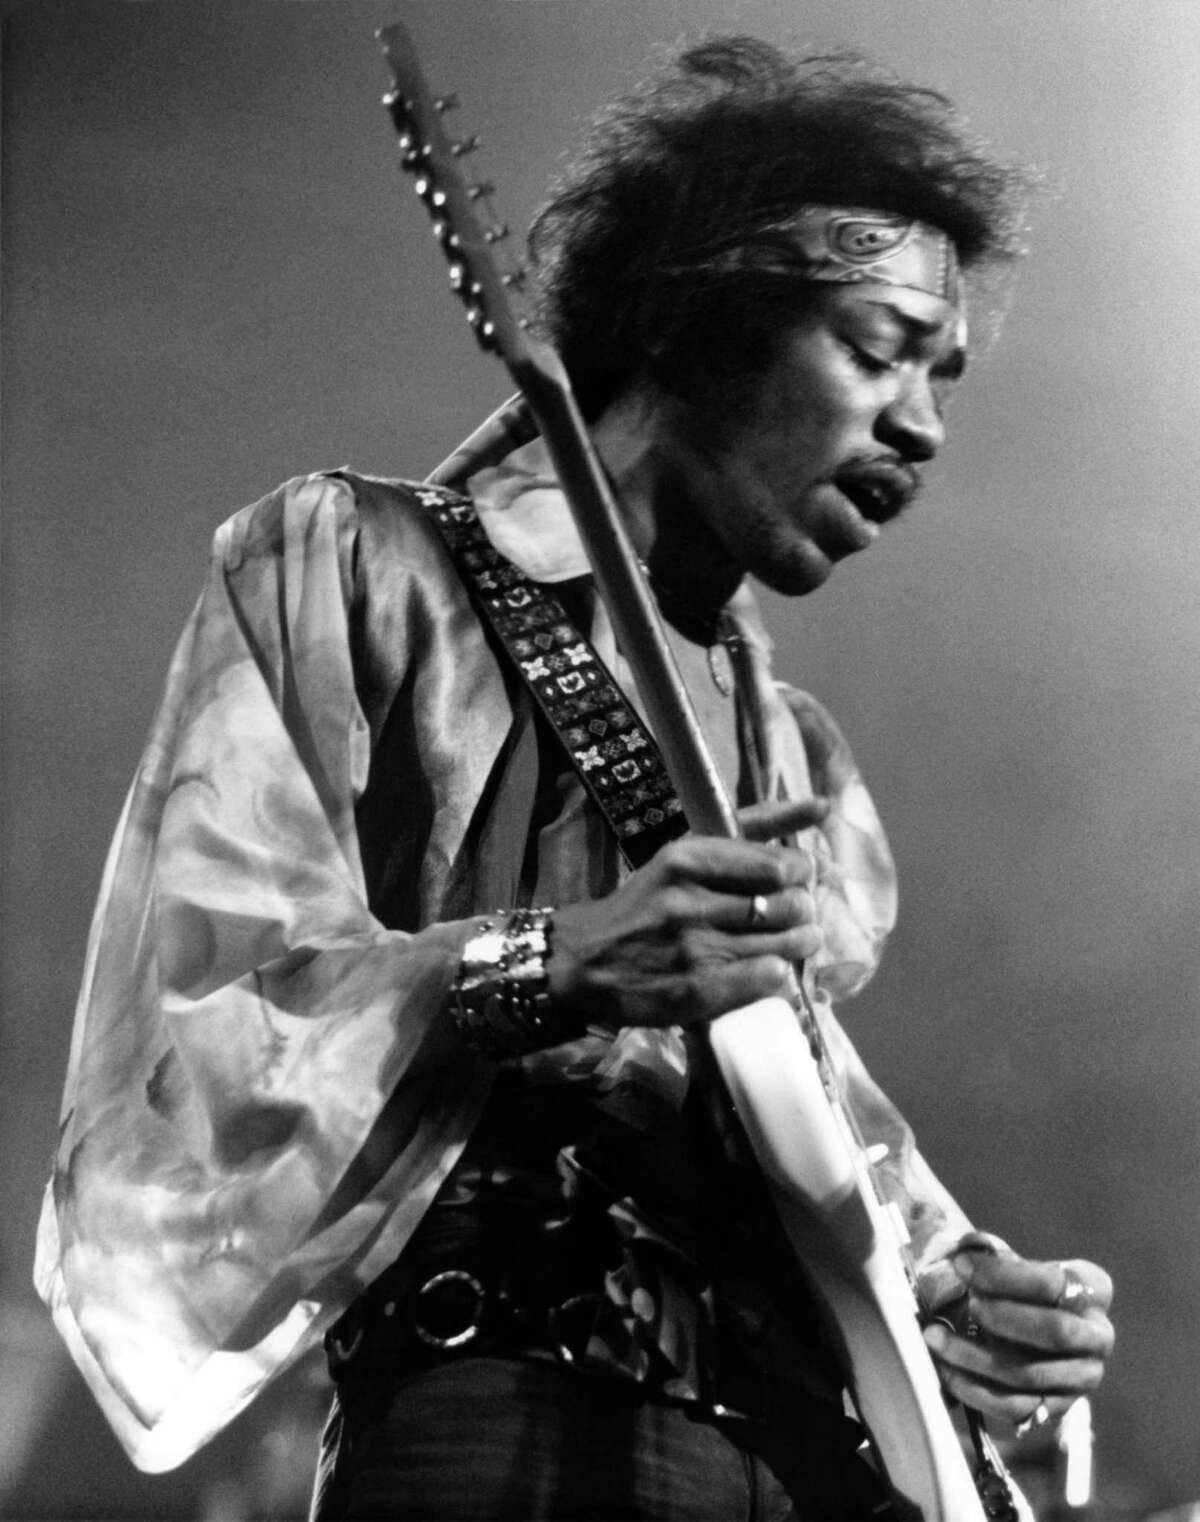 Jimi Hendrix, 1942-1970. Keep clicking to see what he, and other rock legends, would look like if they were still alive today.